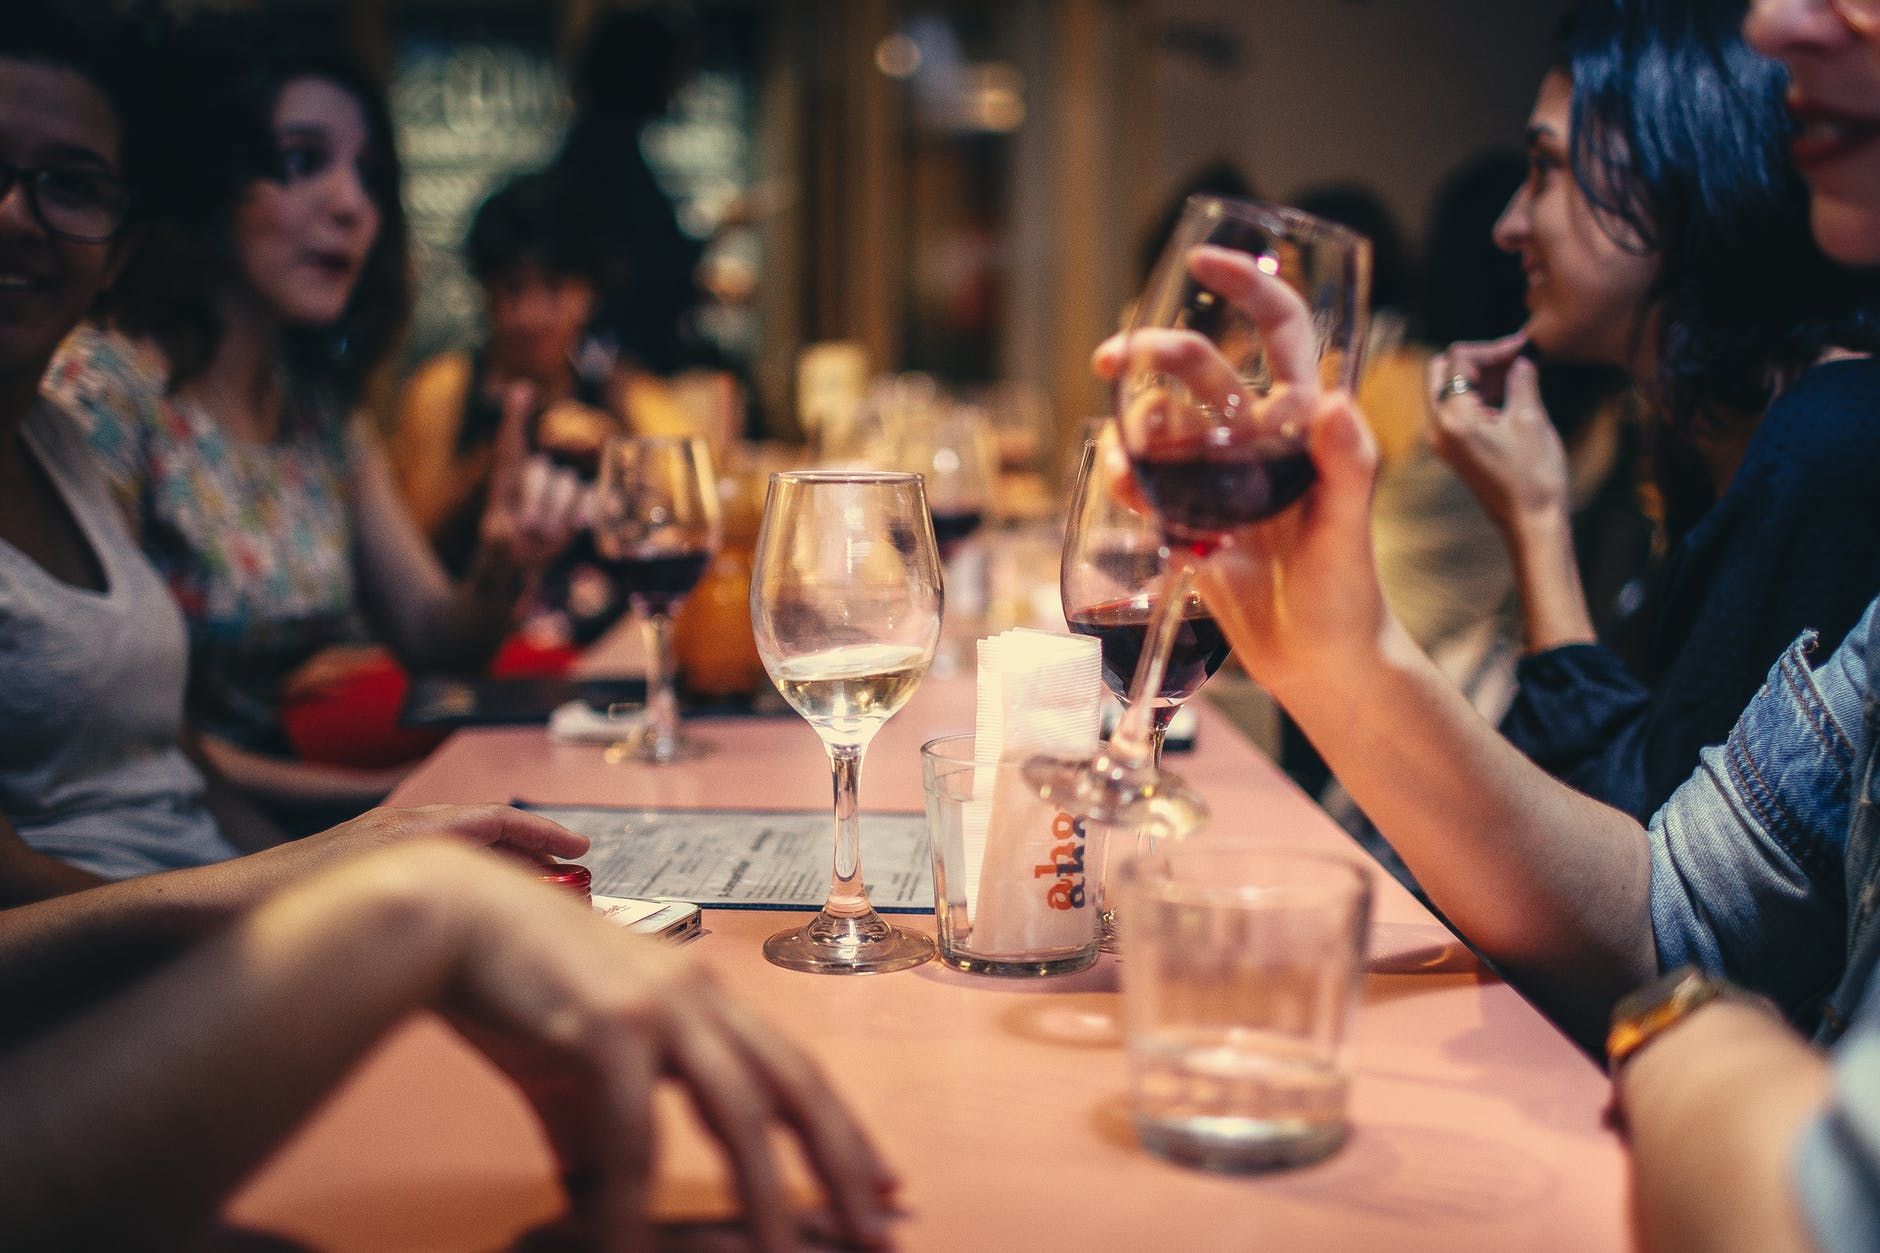 Venues warned of Covid crackdown throughout NSW